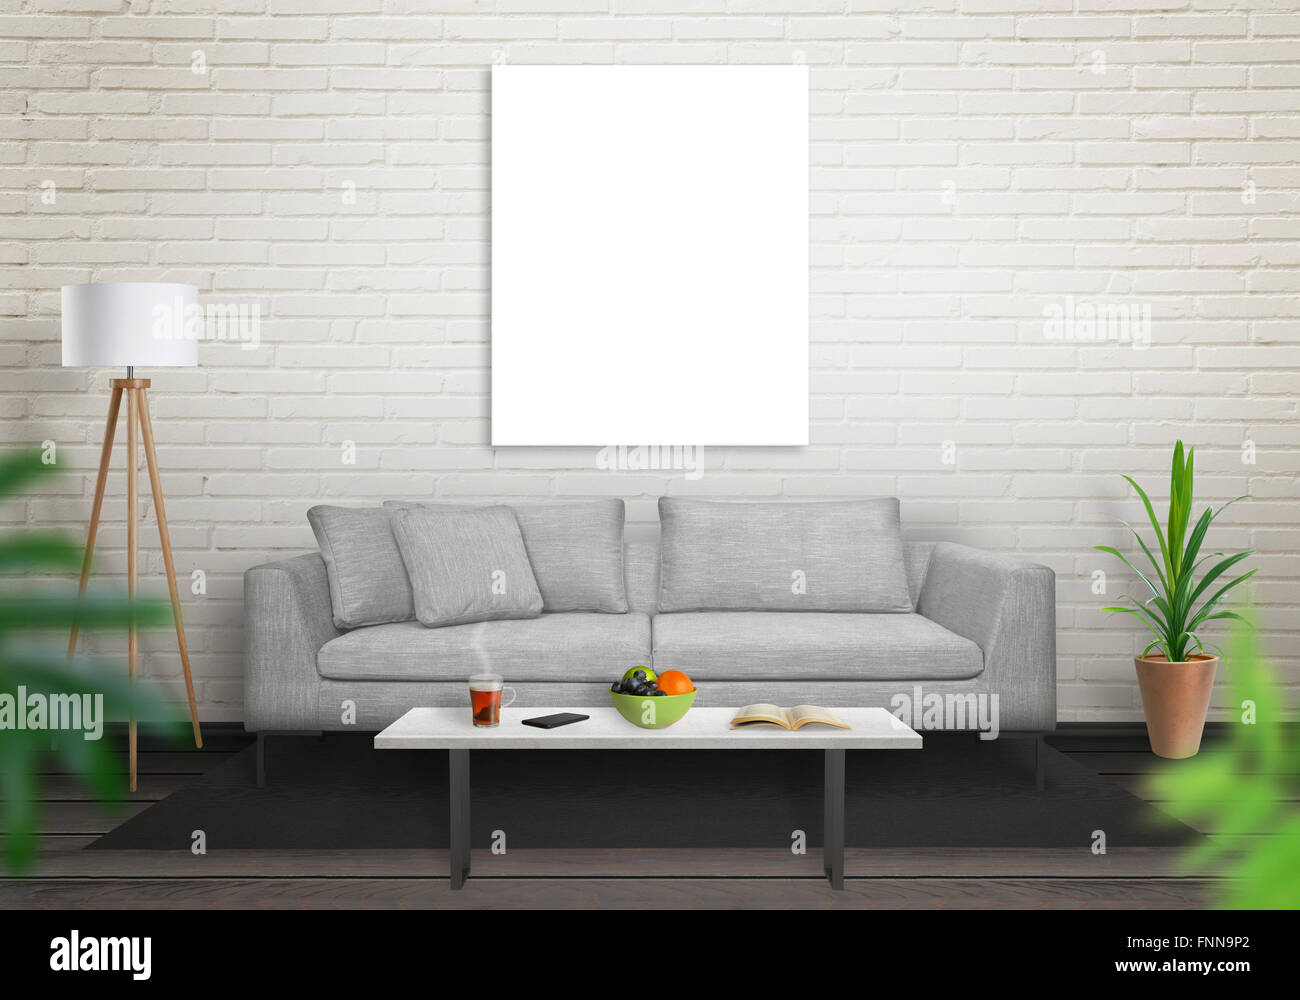 isolierte leinwand im wohnzimmer f r mock up ziegelmauer wei en und schwarzen holzboden sofa. Black Bedroom Furniture Sets. Home Design Ideas